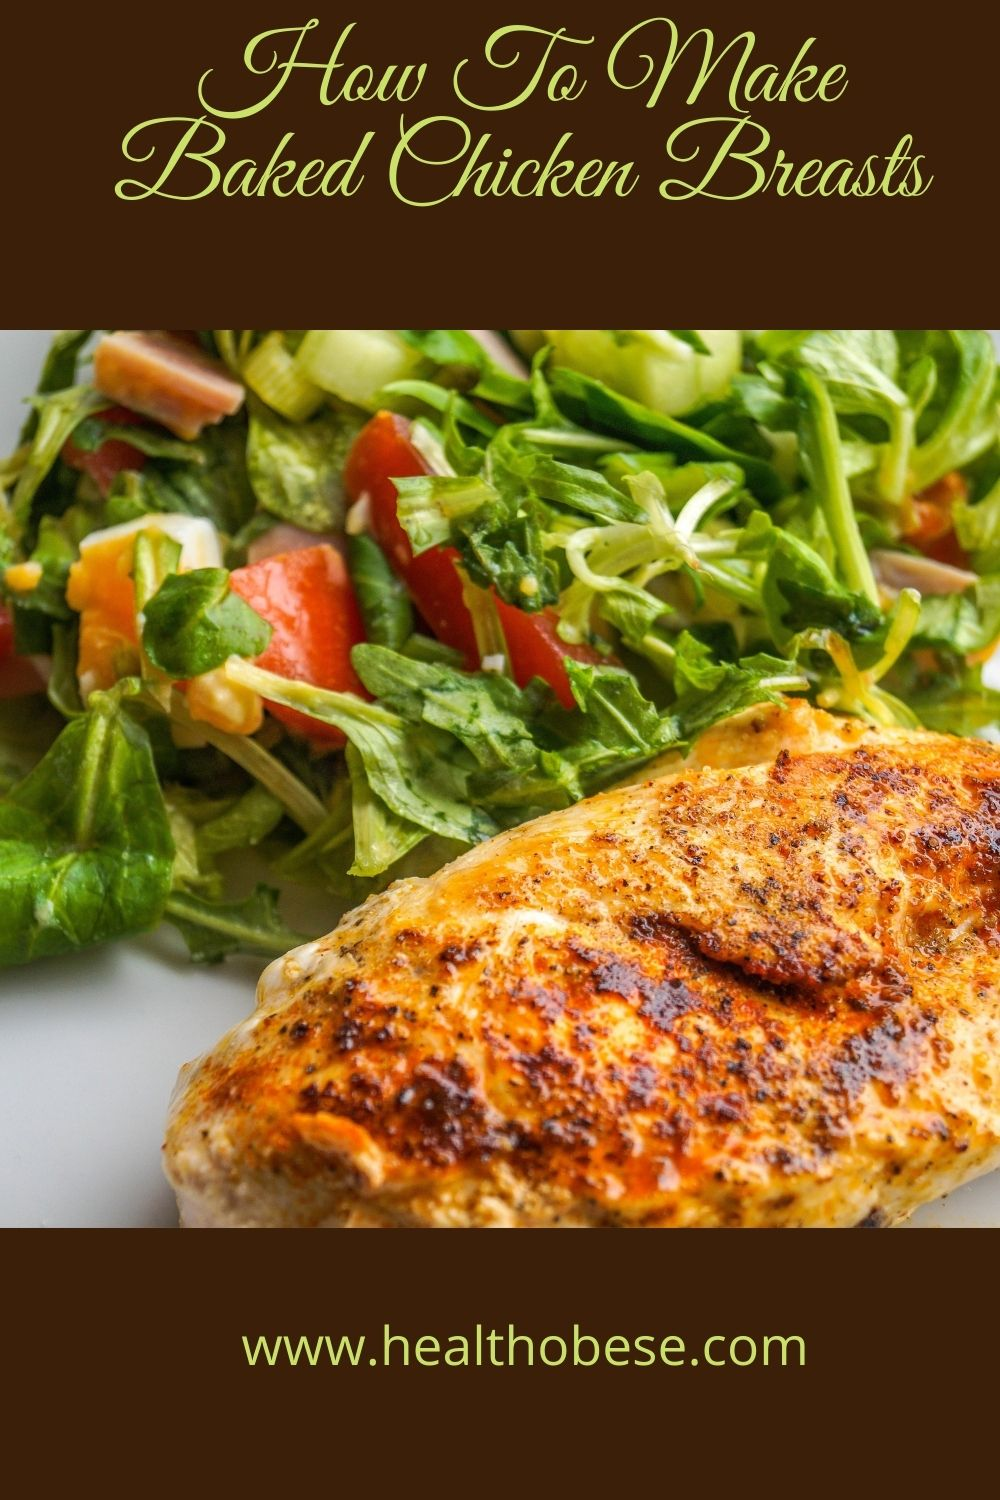 How To Make Baked Chicken Breasts